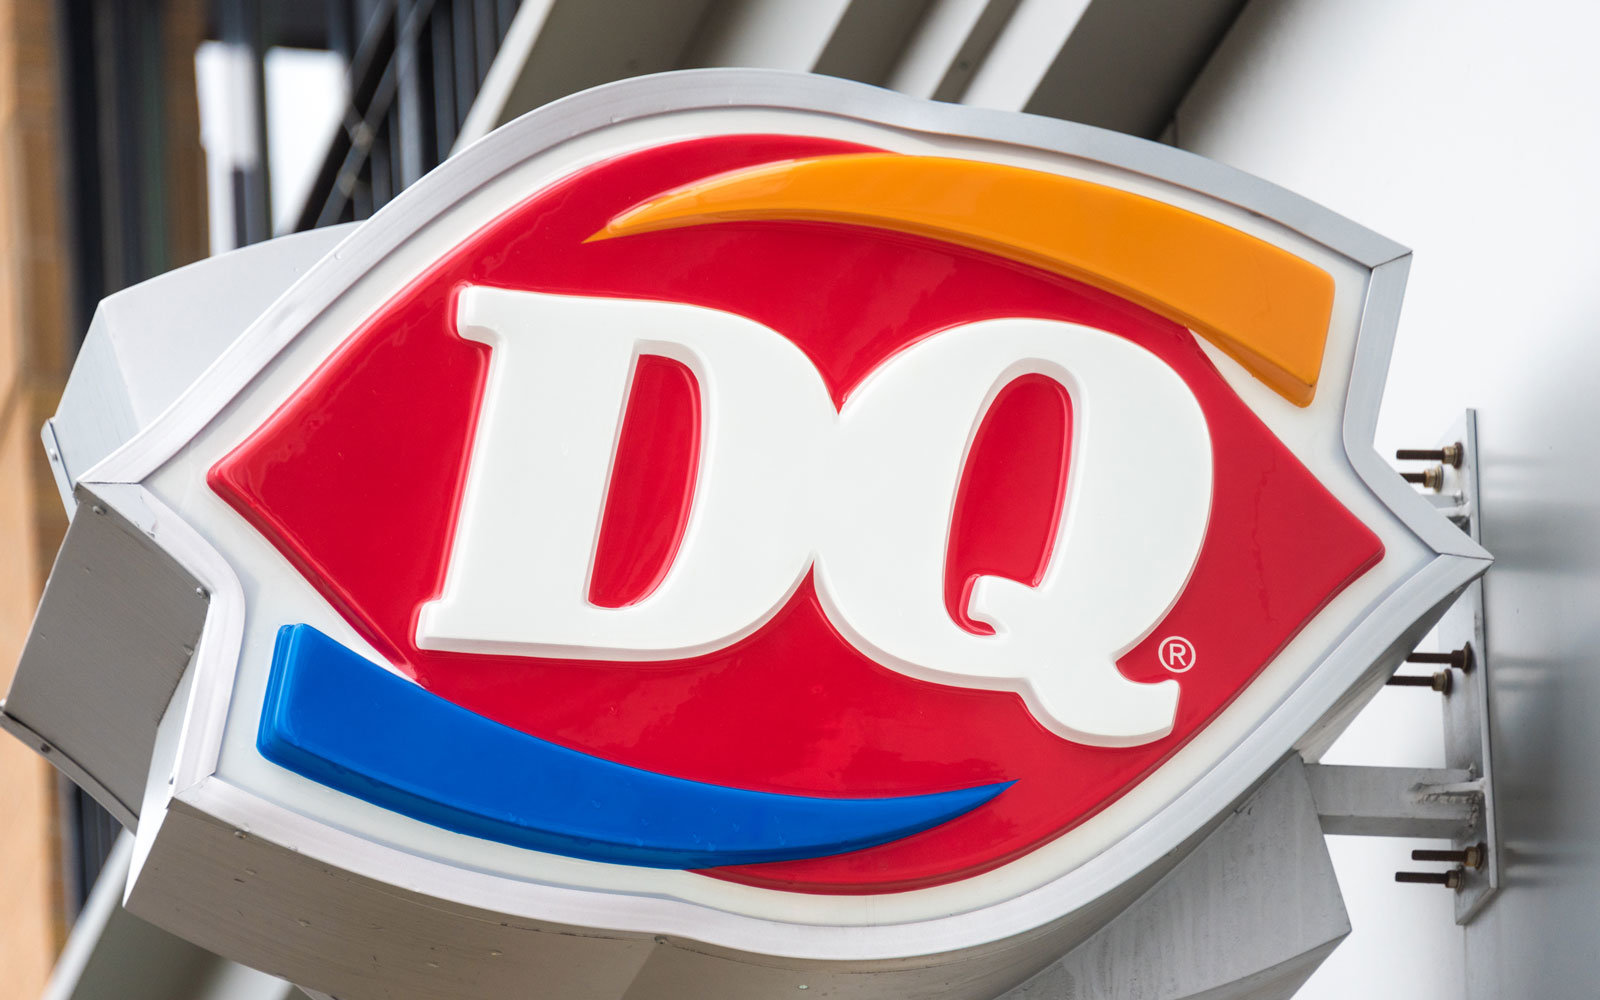 Free cone day at Dairy Queen...but there's a twist